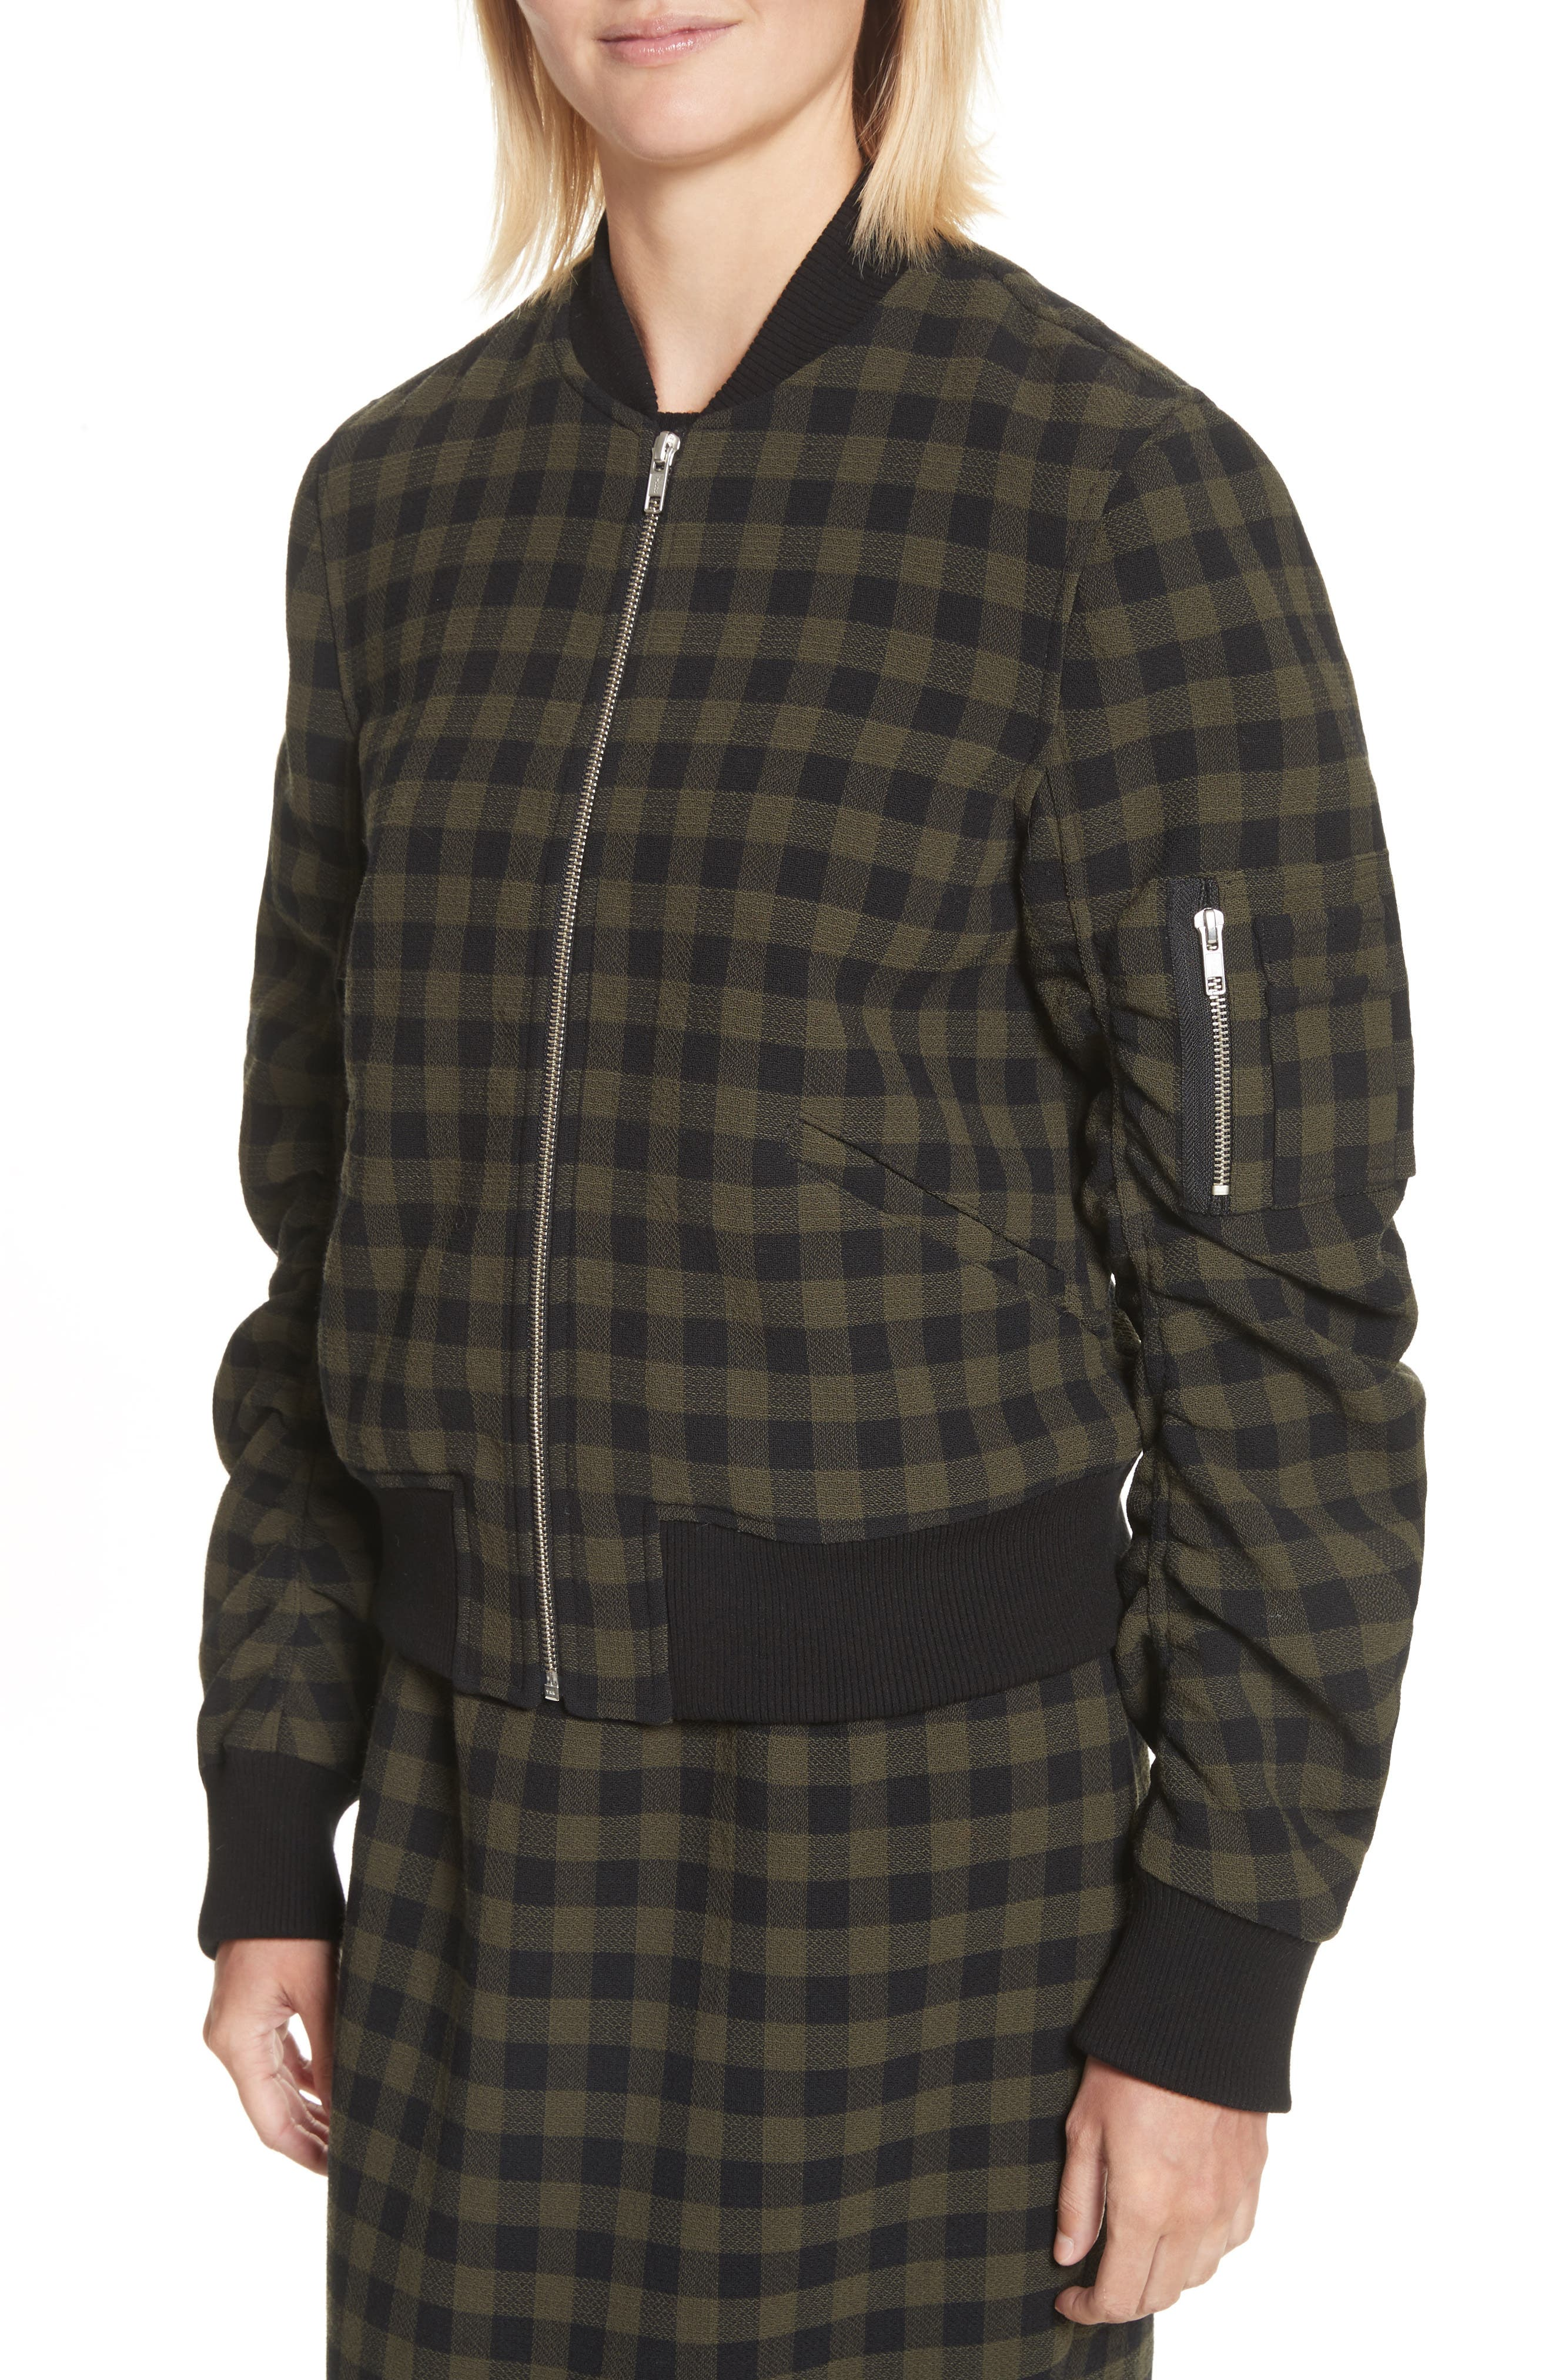 A..L.C. Andrew Wool Bomber Jacket,                             Alternate thumbnail 4, color,                             340